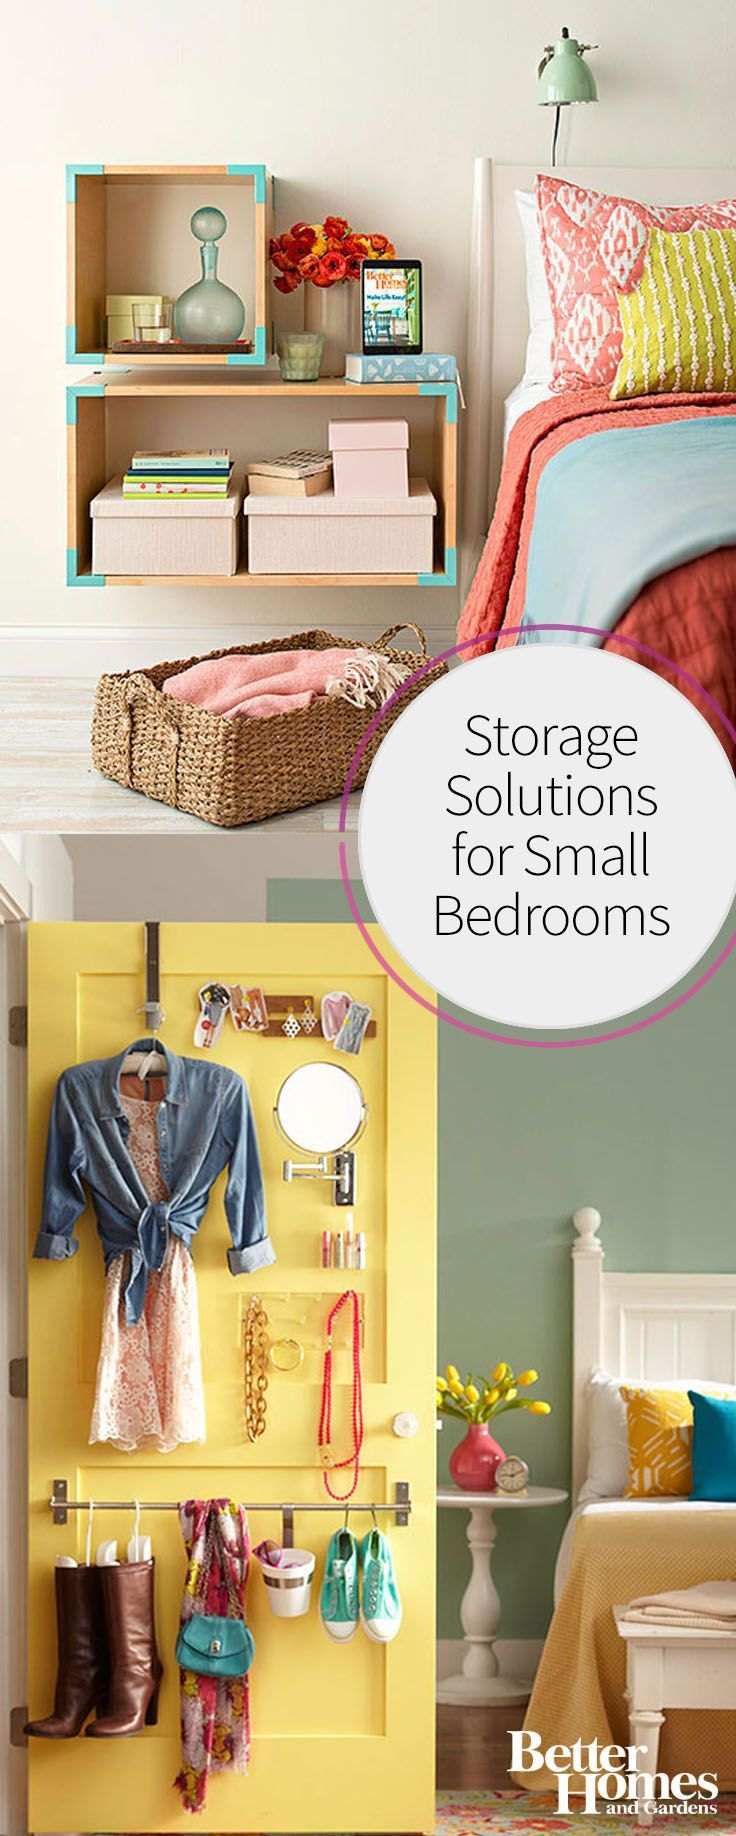 Storage Solutions For Small Bedrooms  Bedroom Storage Tiny Enchanting Storage Solutions For A Small Bedroom Design Decoration